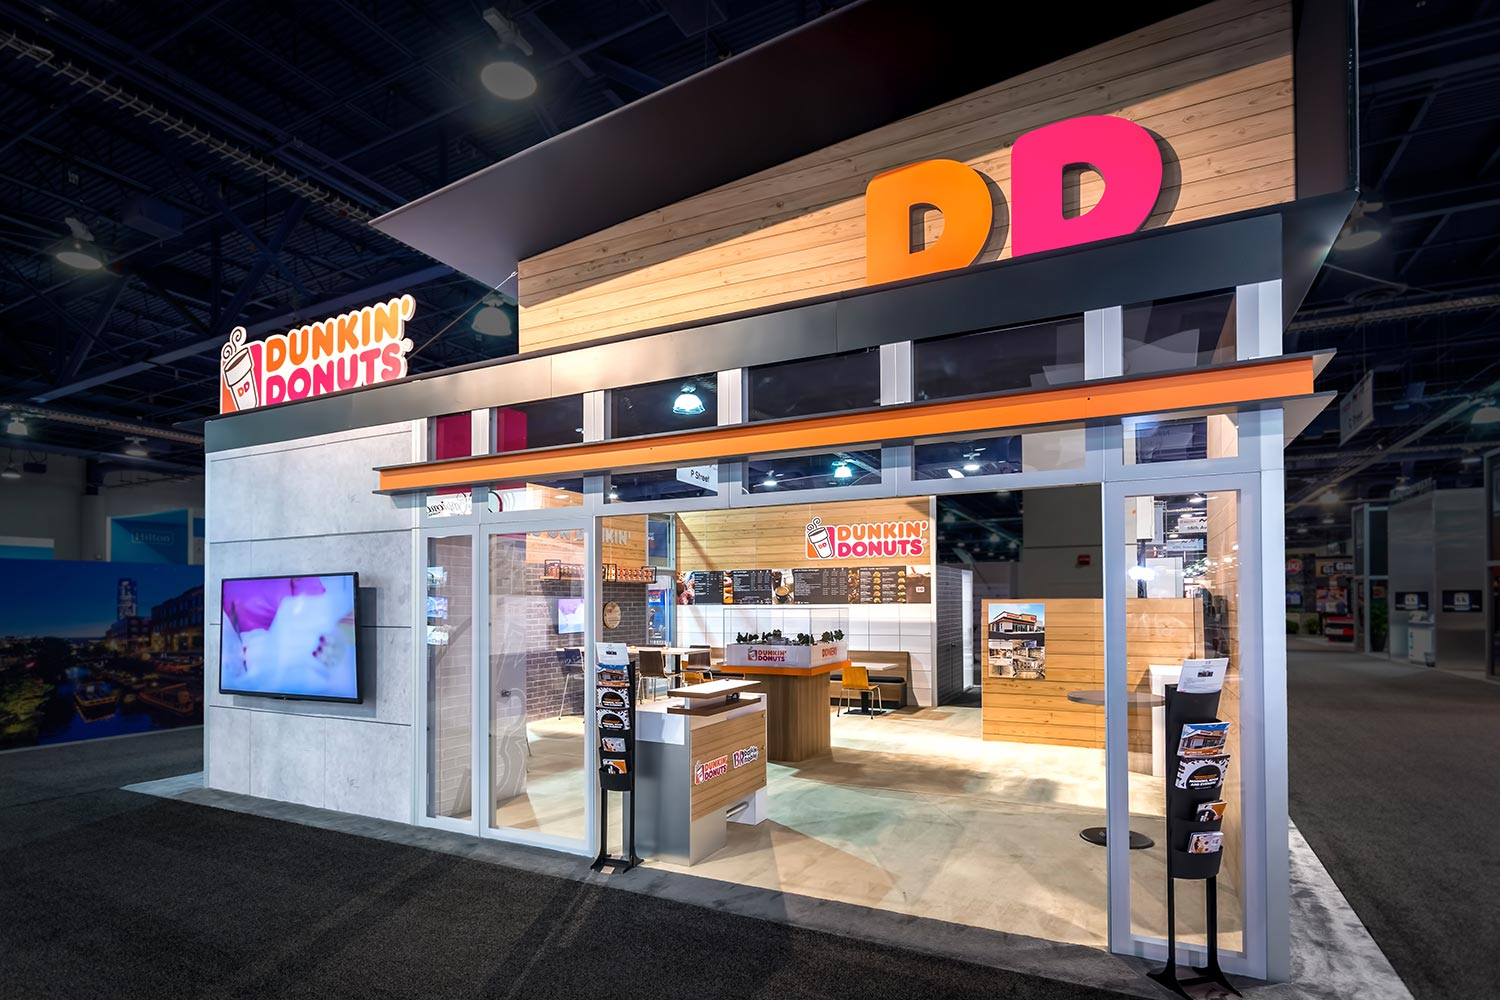 Dunkin' Donuts trade show exhibit